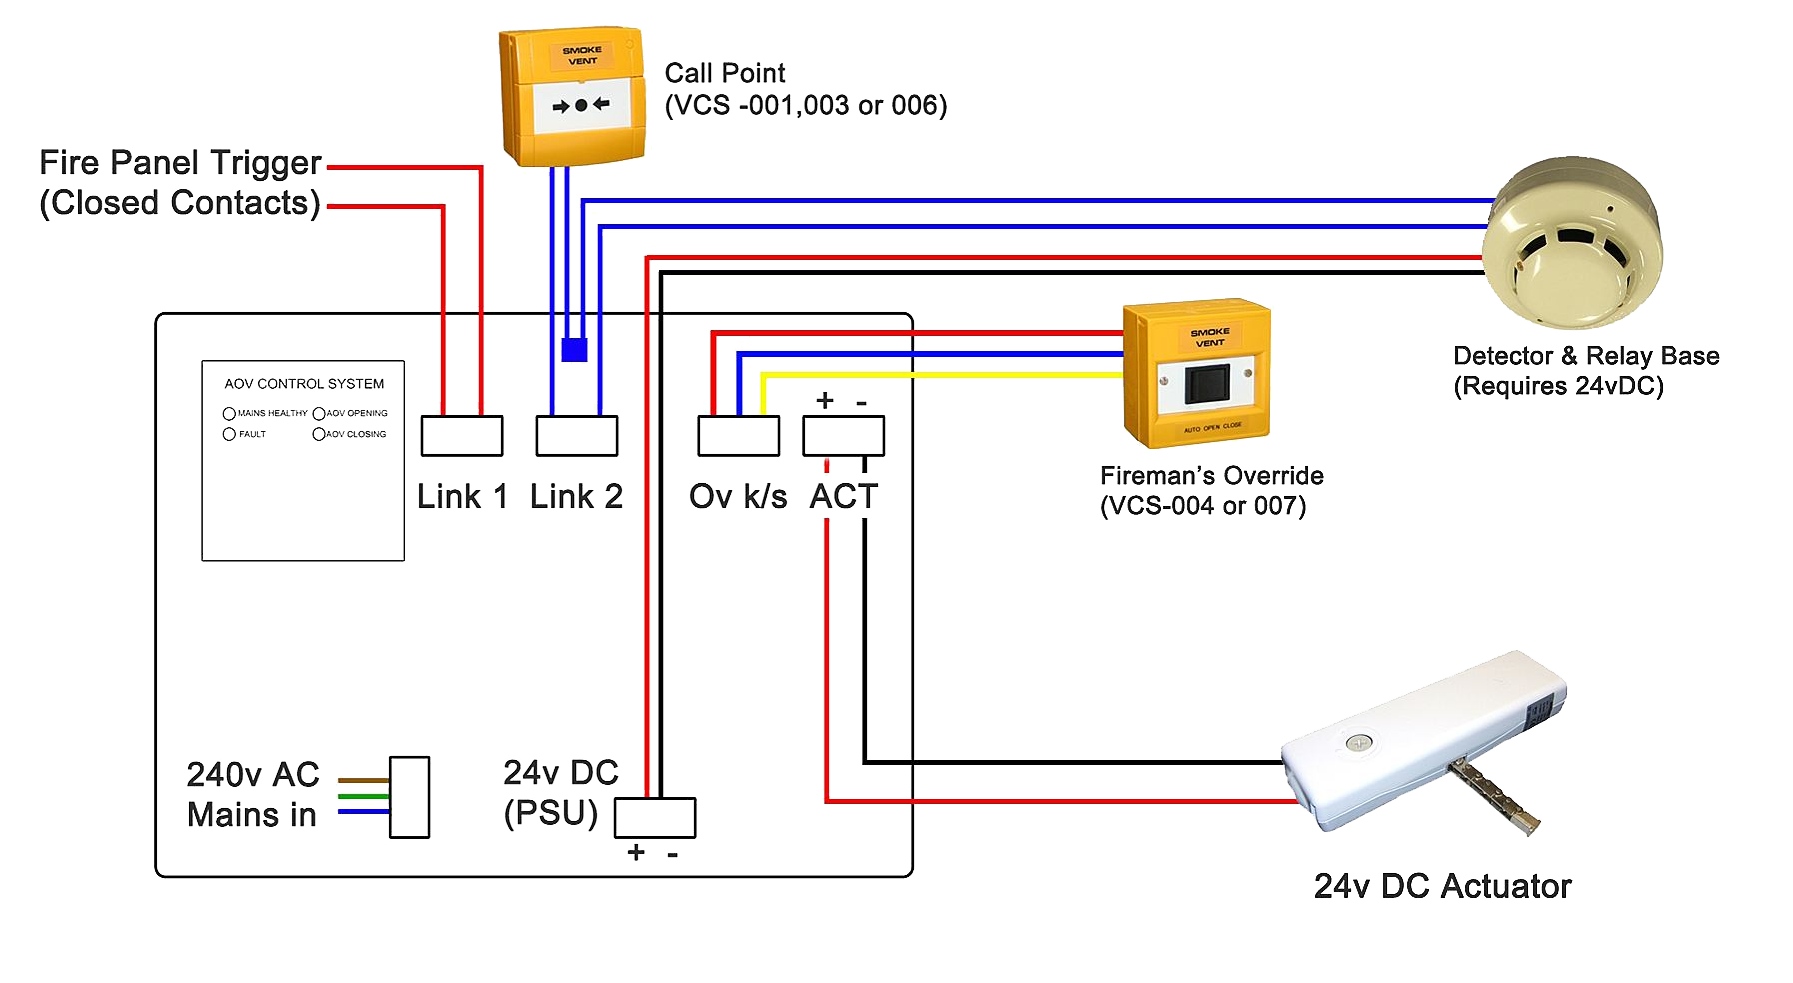 Index in addition Simplex Fire Alarm Wiring Diagrams besides Smoke Alarm Wiring Diagram further Fcm 1 Rel Wiring Diagram together with Dry Pipe Sprinkler Systems. on fire alarm elevator recall diagram